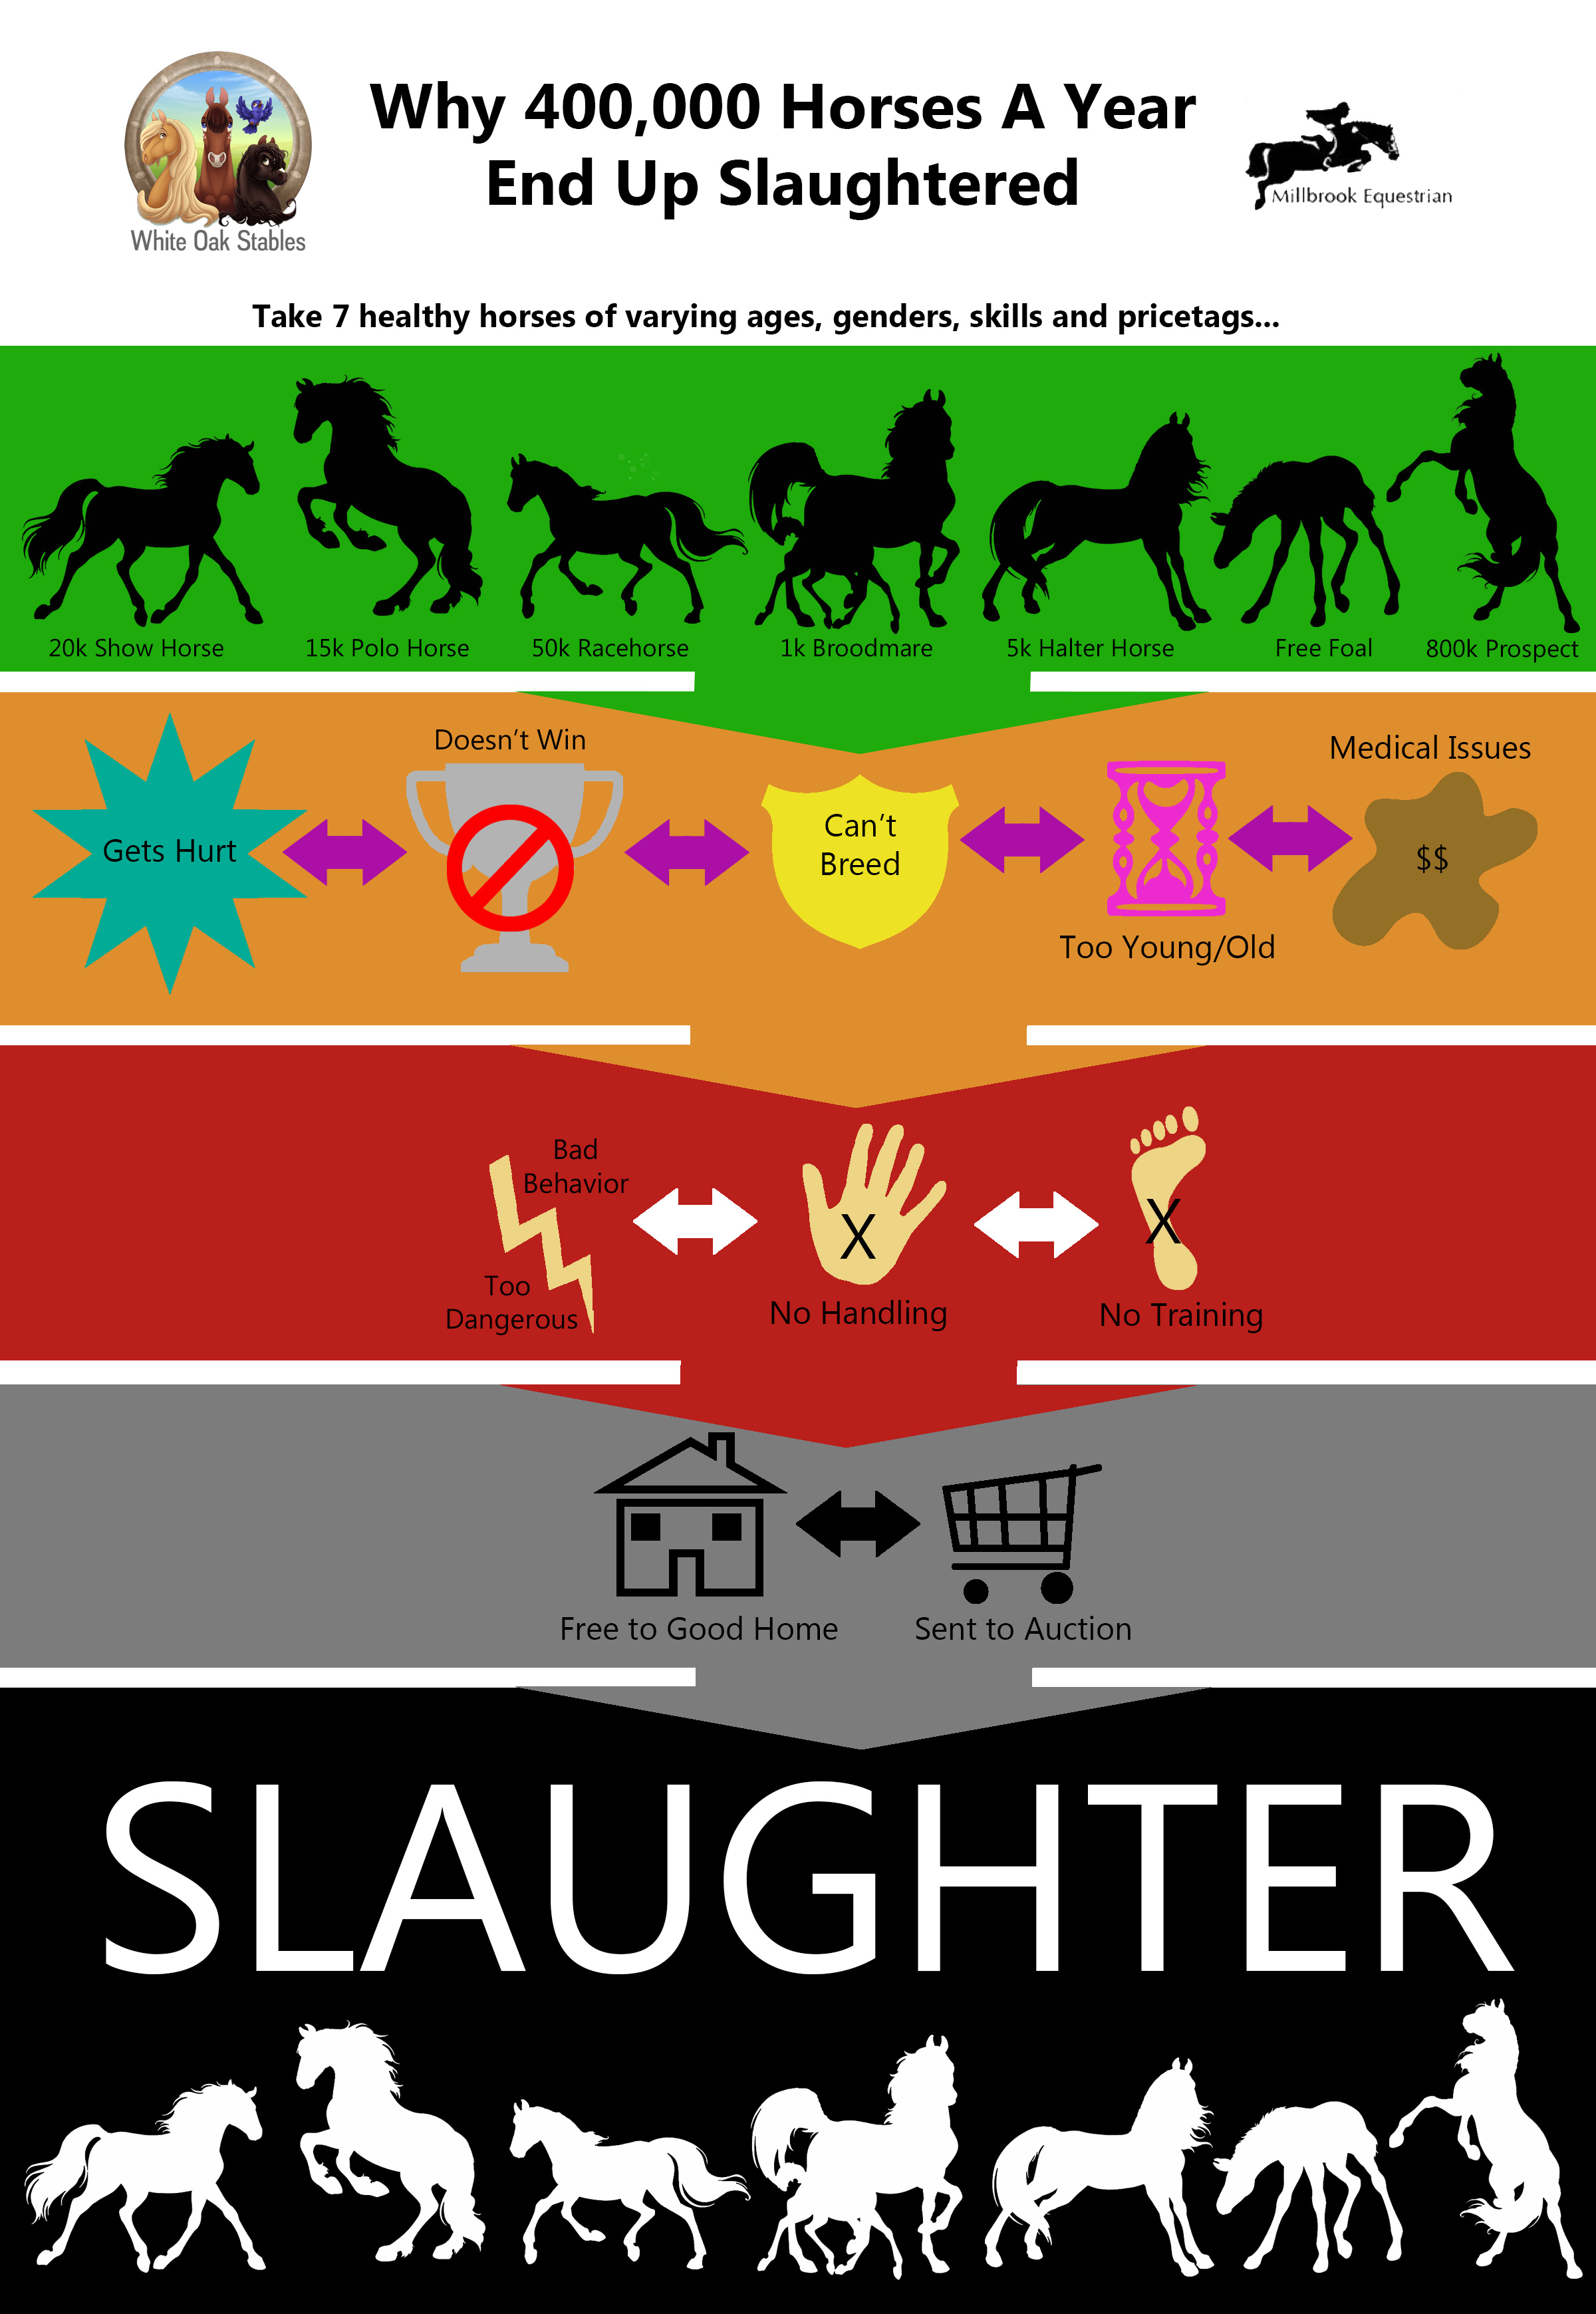 Why Horses Go To Slaughter